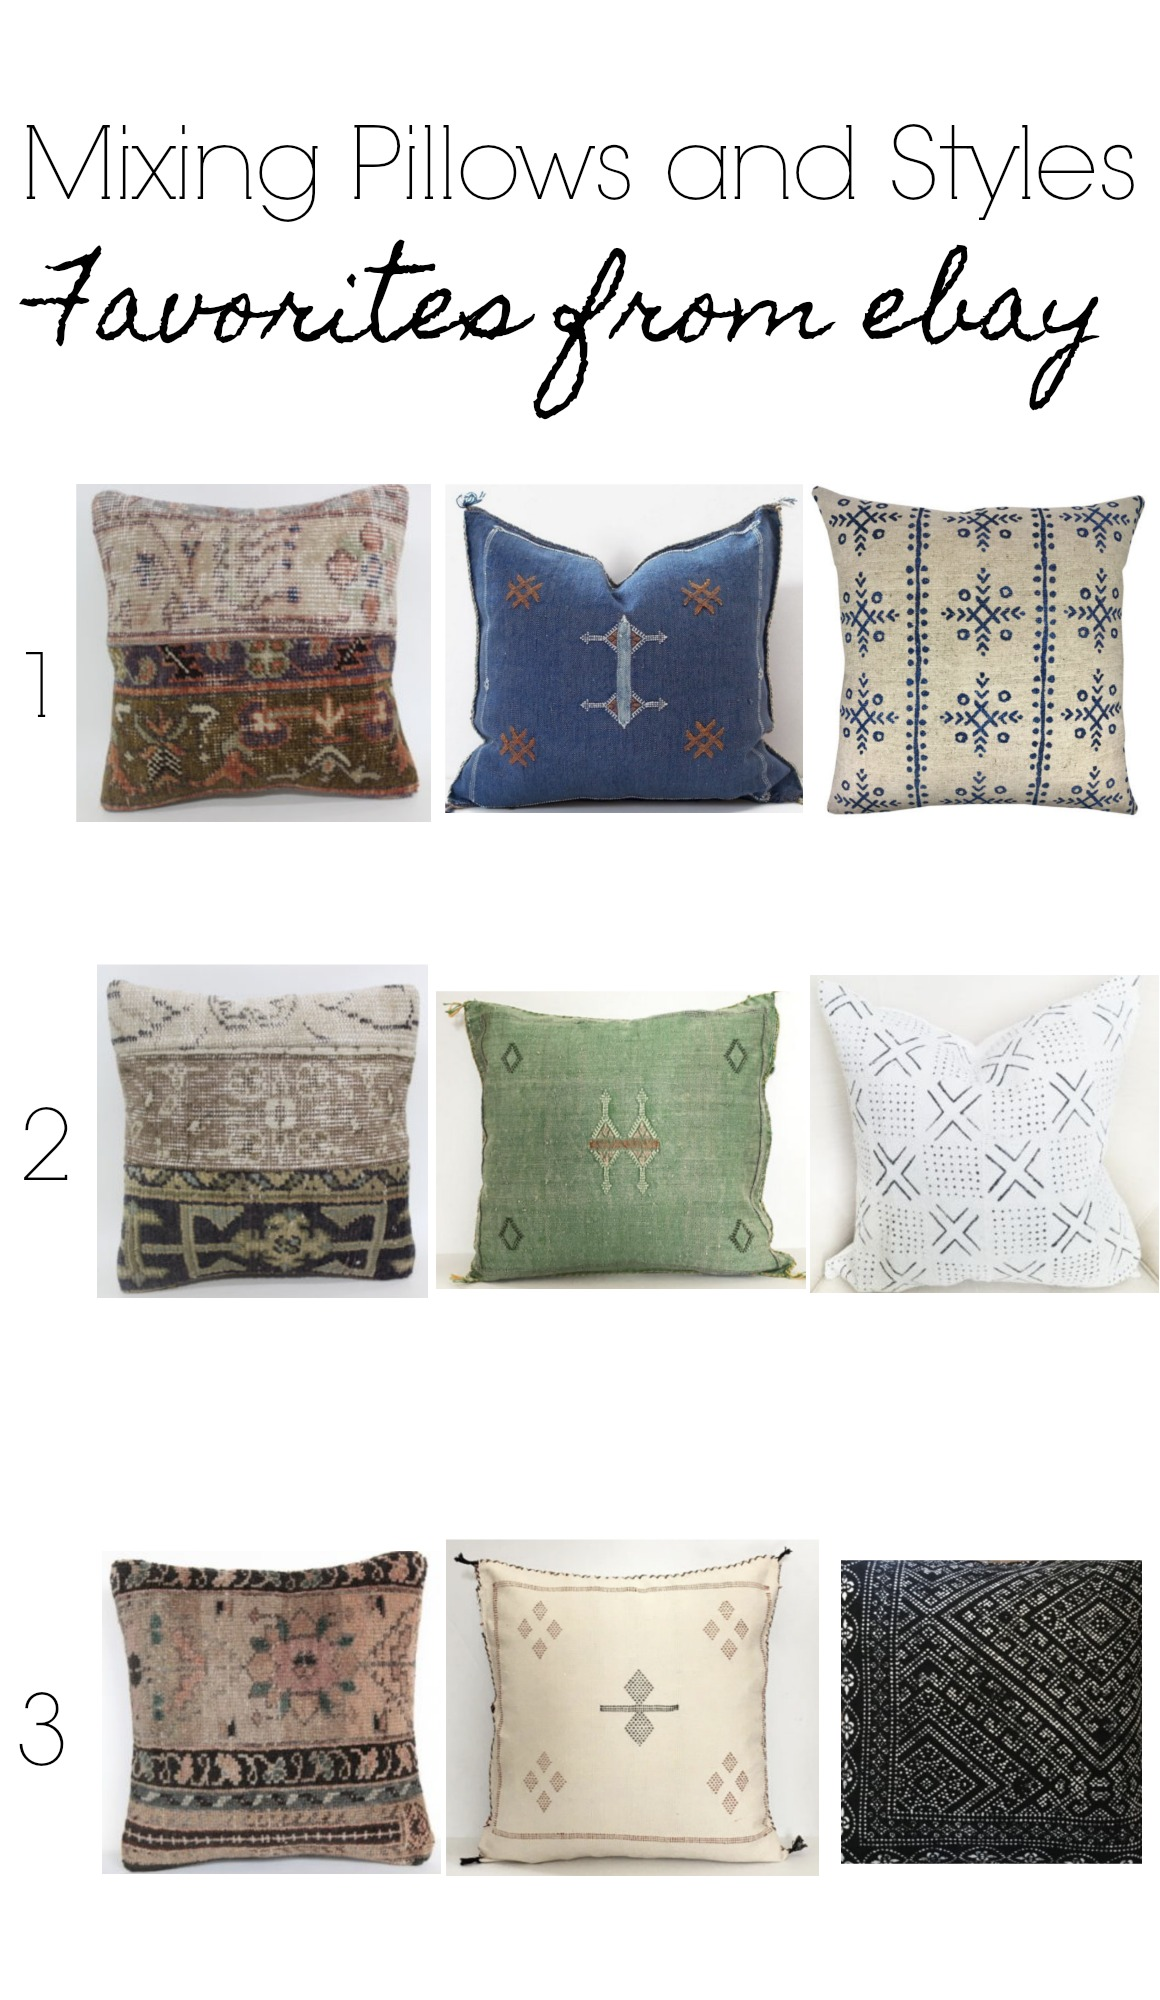 How to Mix Pillows and Styles